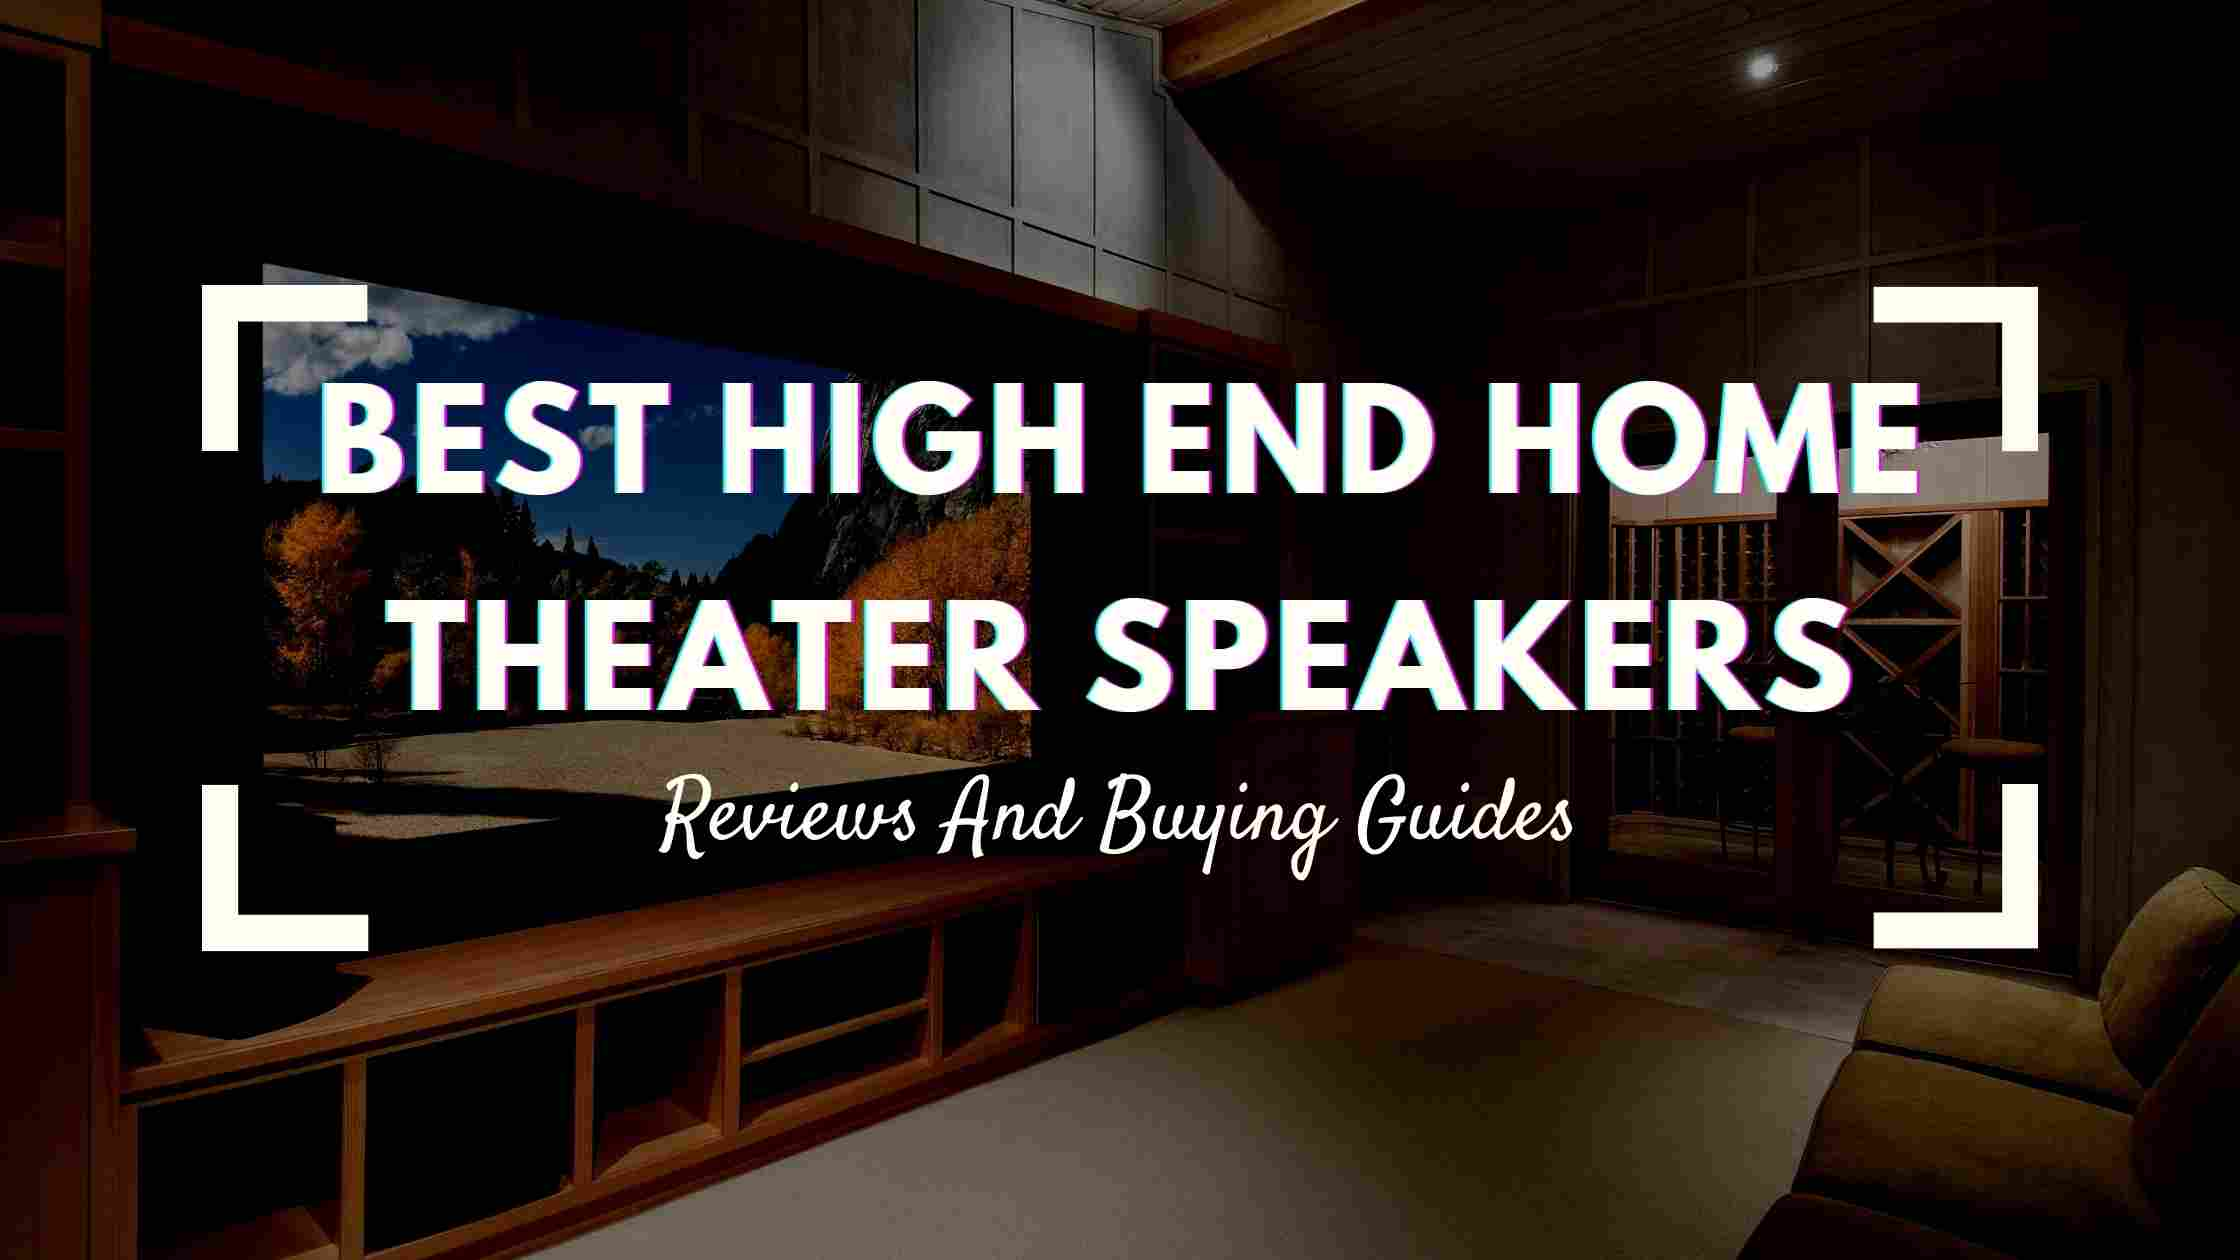 Top 17 Best High End Home Theater Speakers: Reviews & Comparison 2020